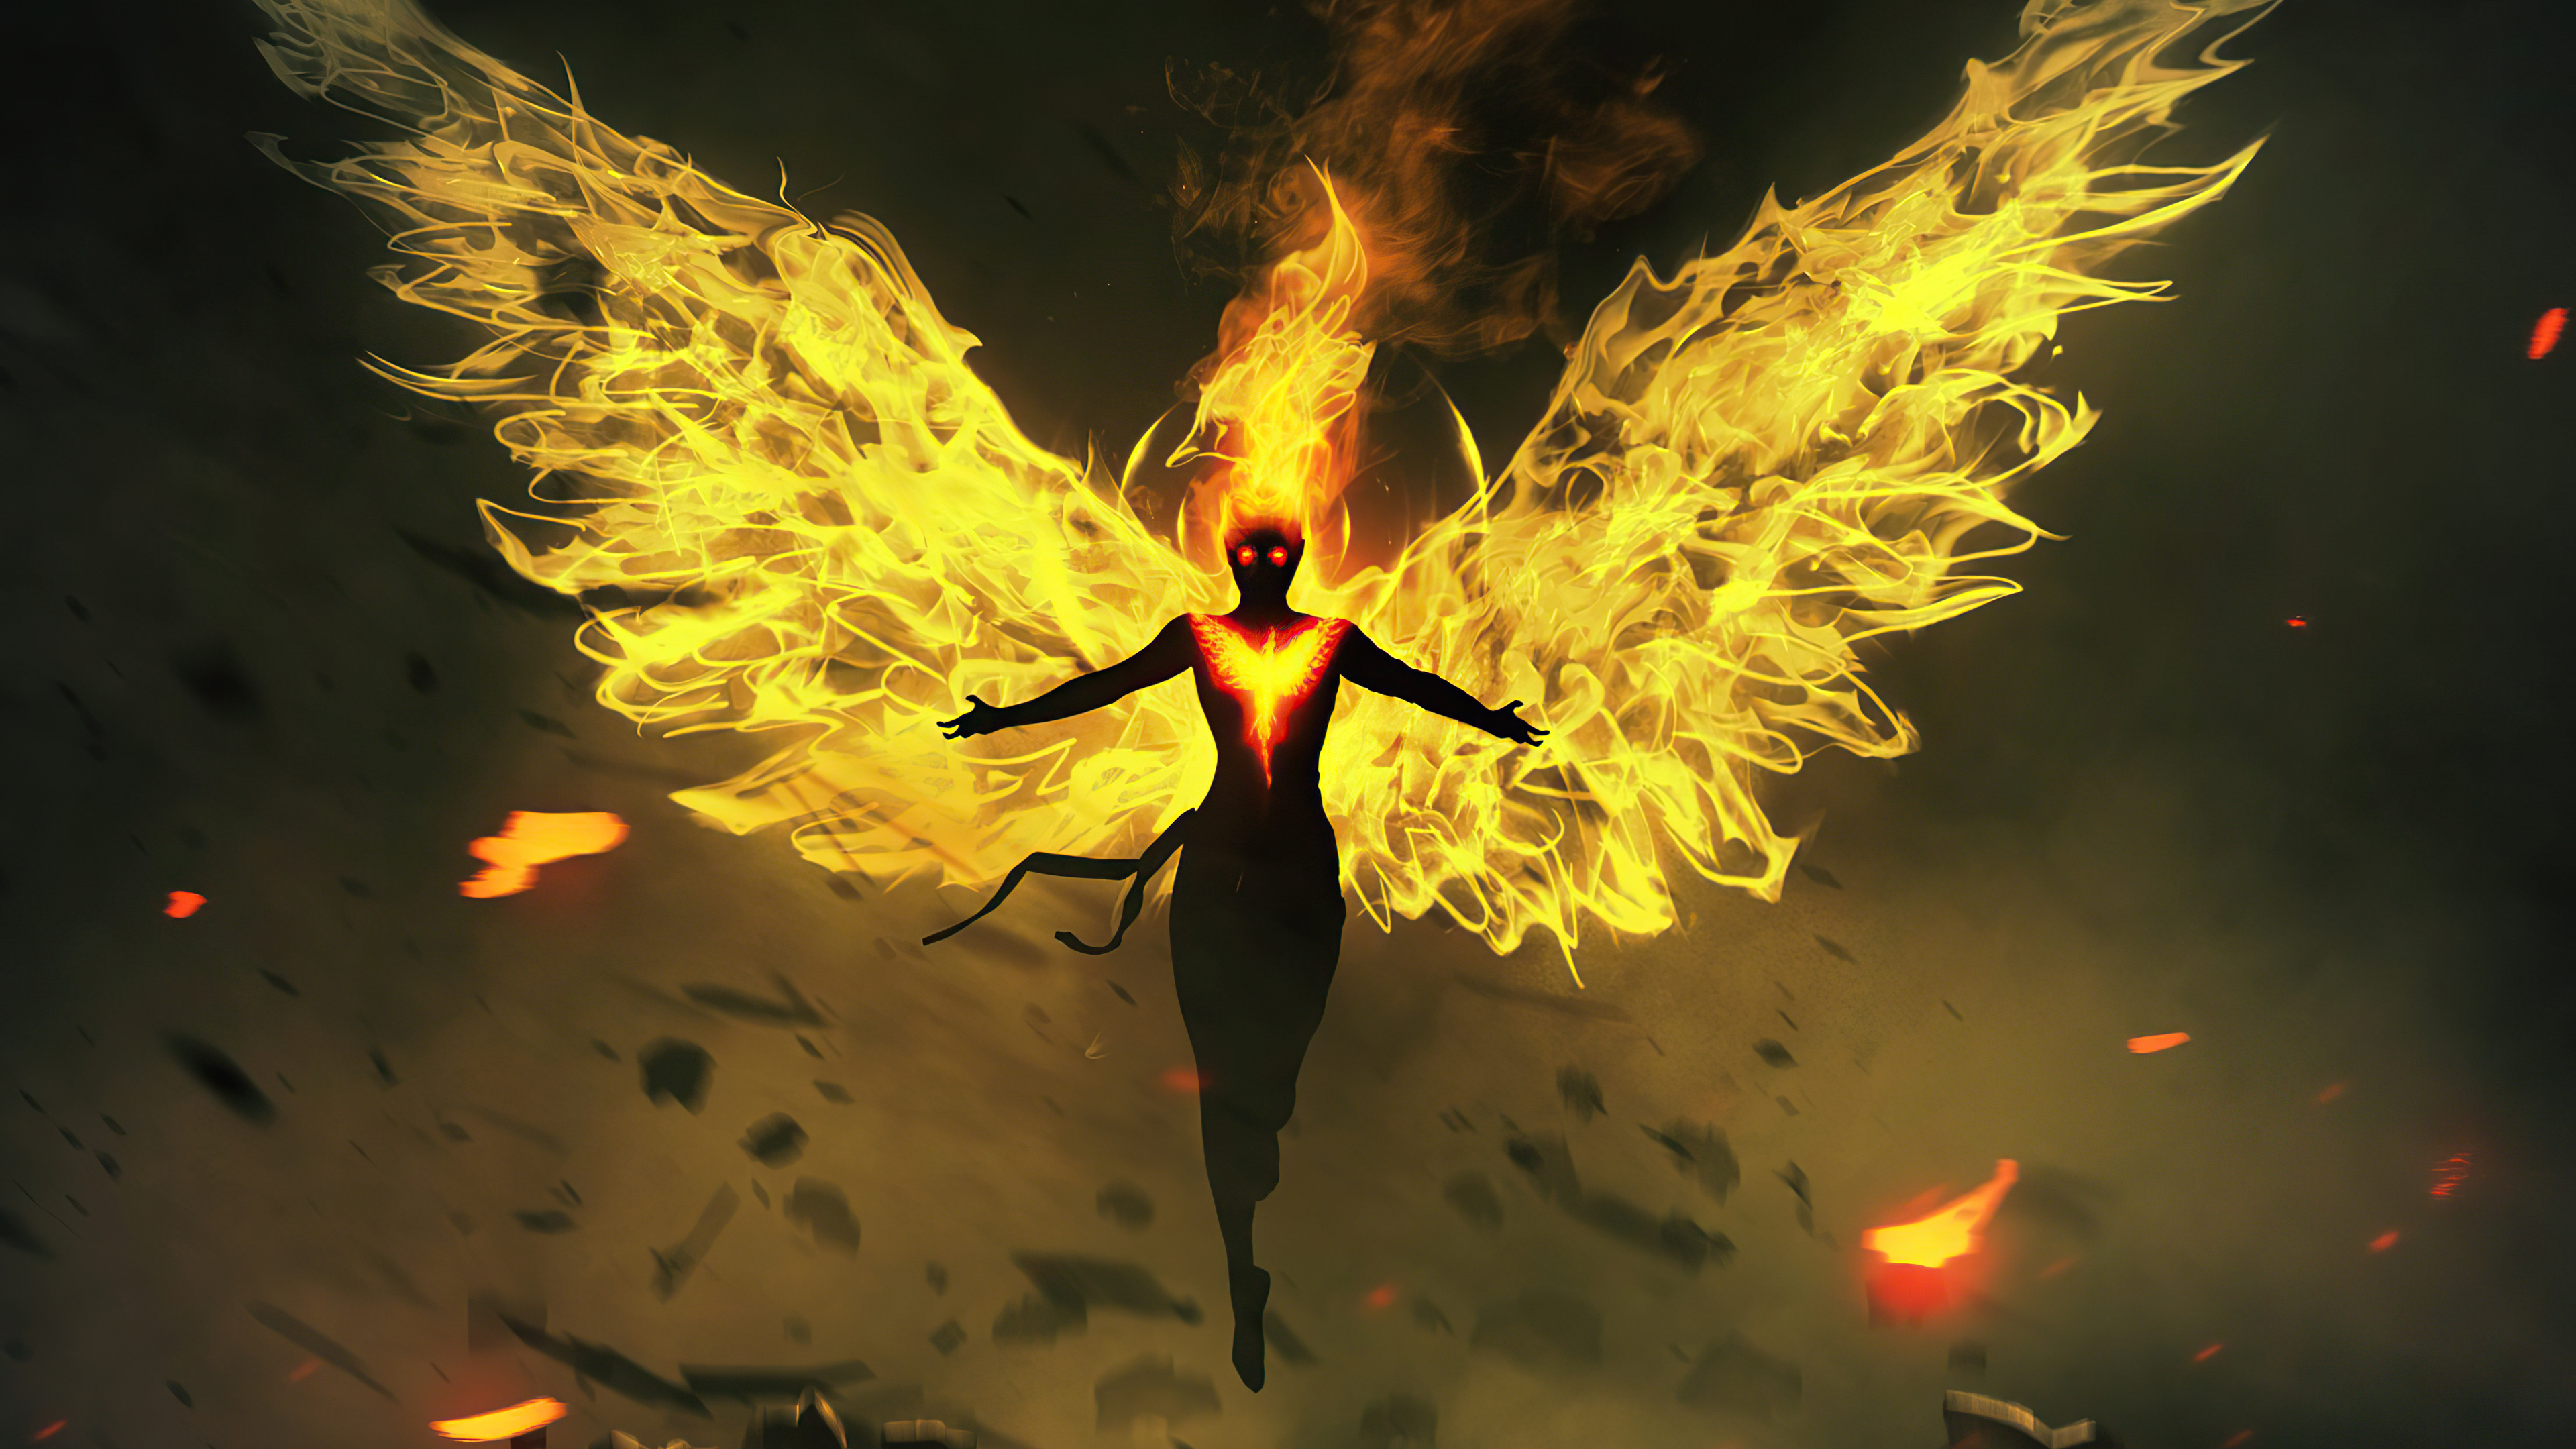 2021 pheonix artwork 4k 1619216109 - 2021 Pheonix Artwork 4k - 2021 Pheonix Artwork 4k wallpapers